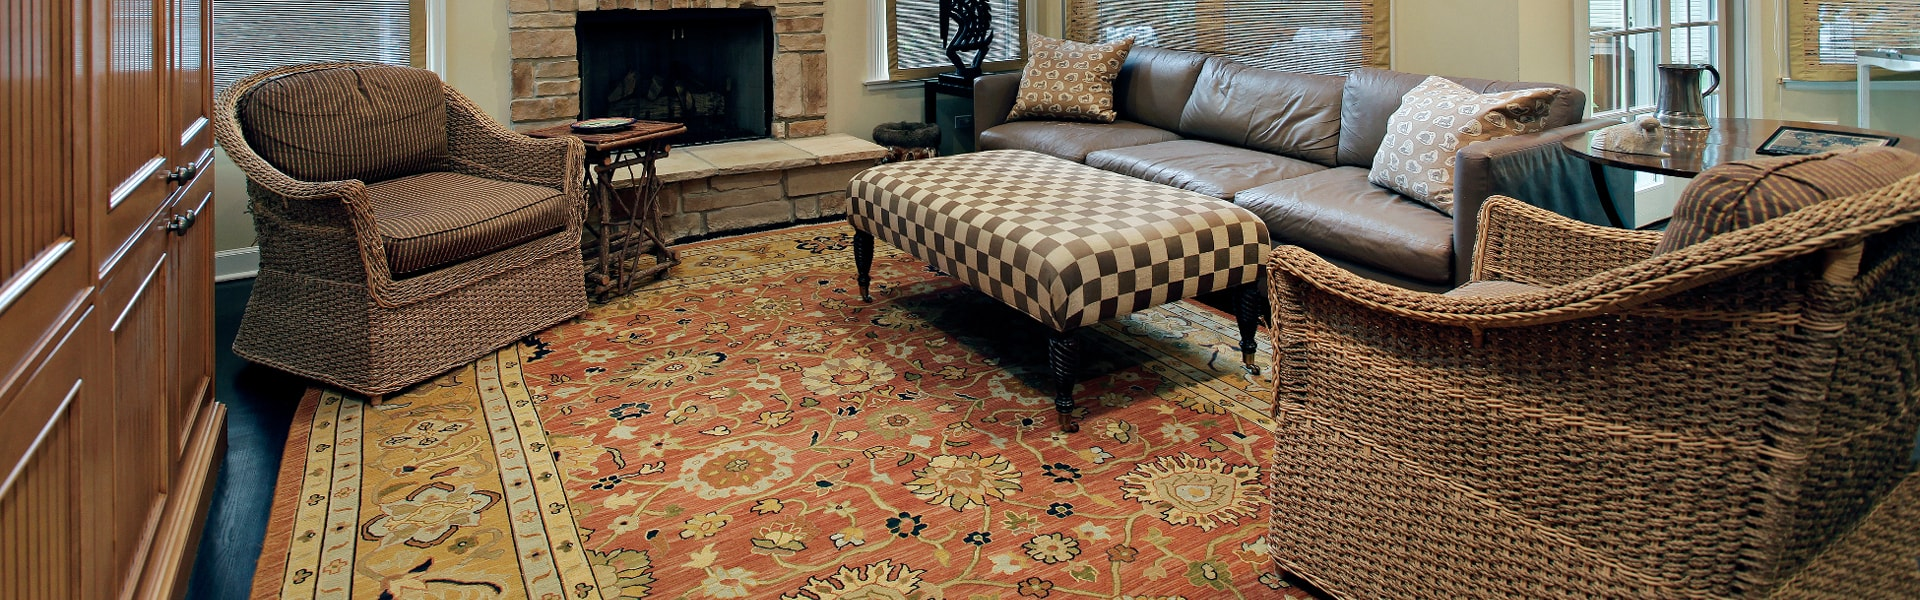 Area Rug Cleaning Savannah Ga Designs